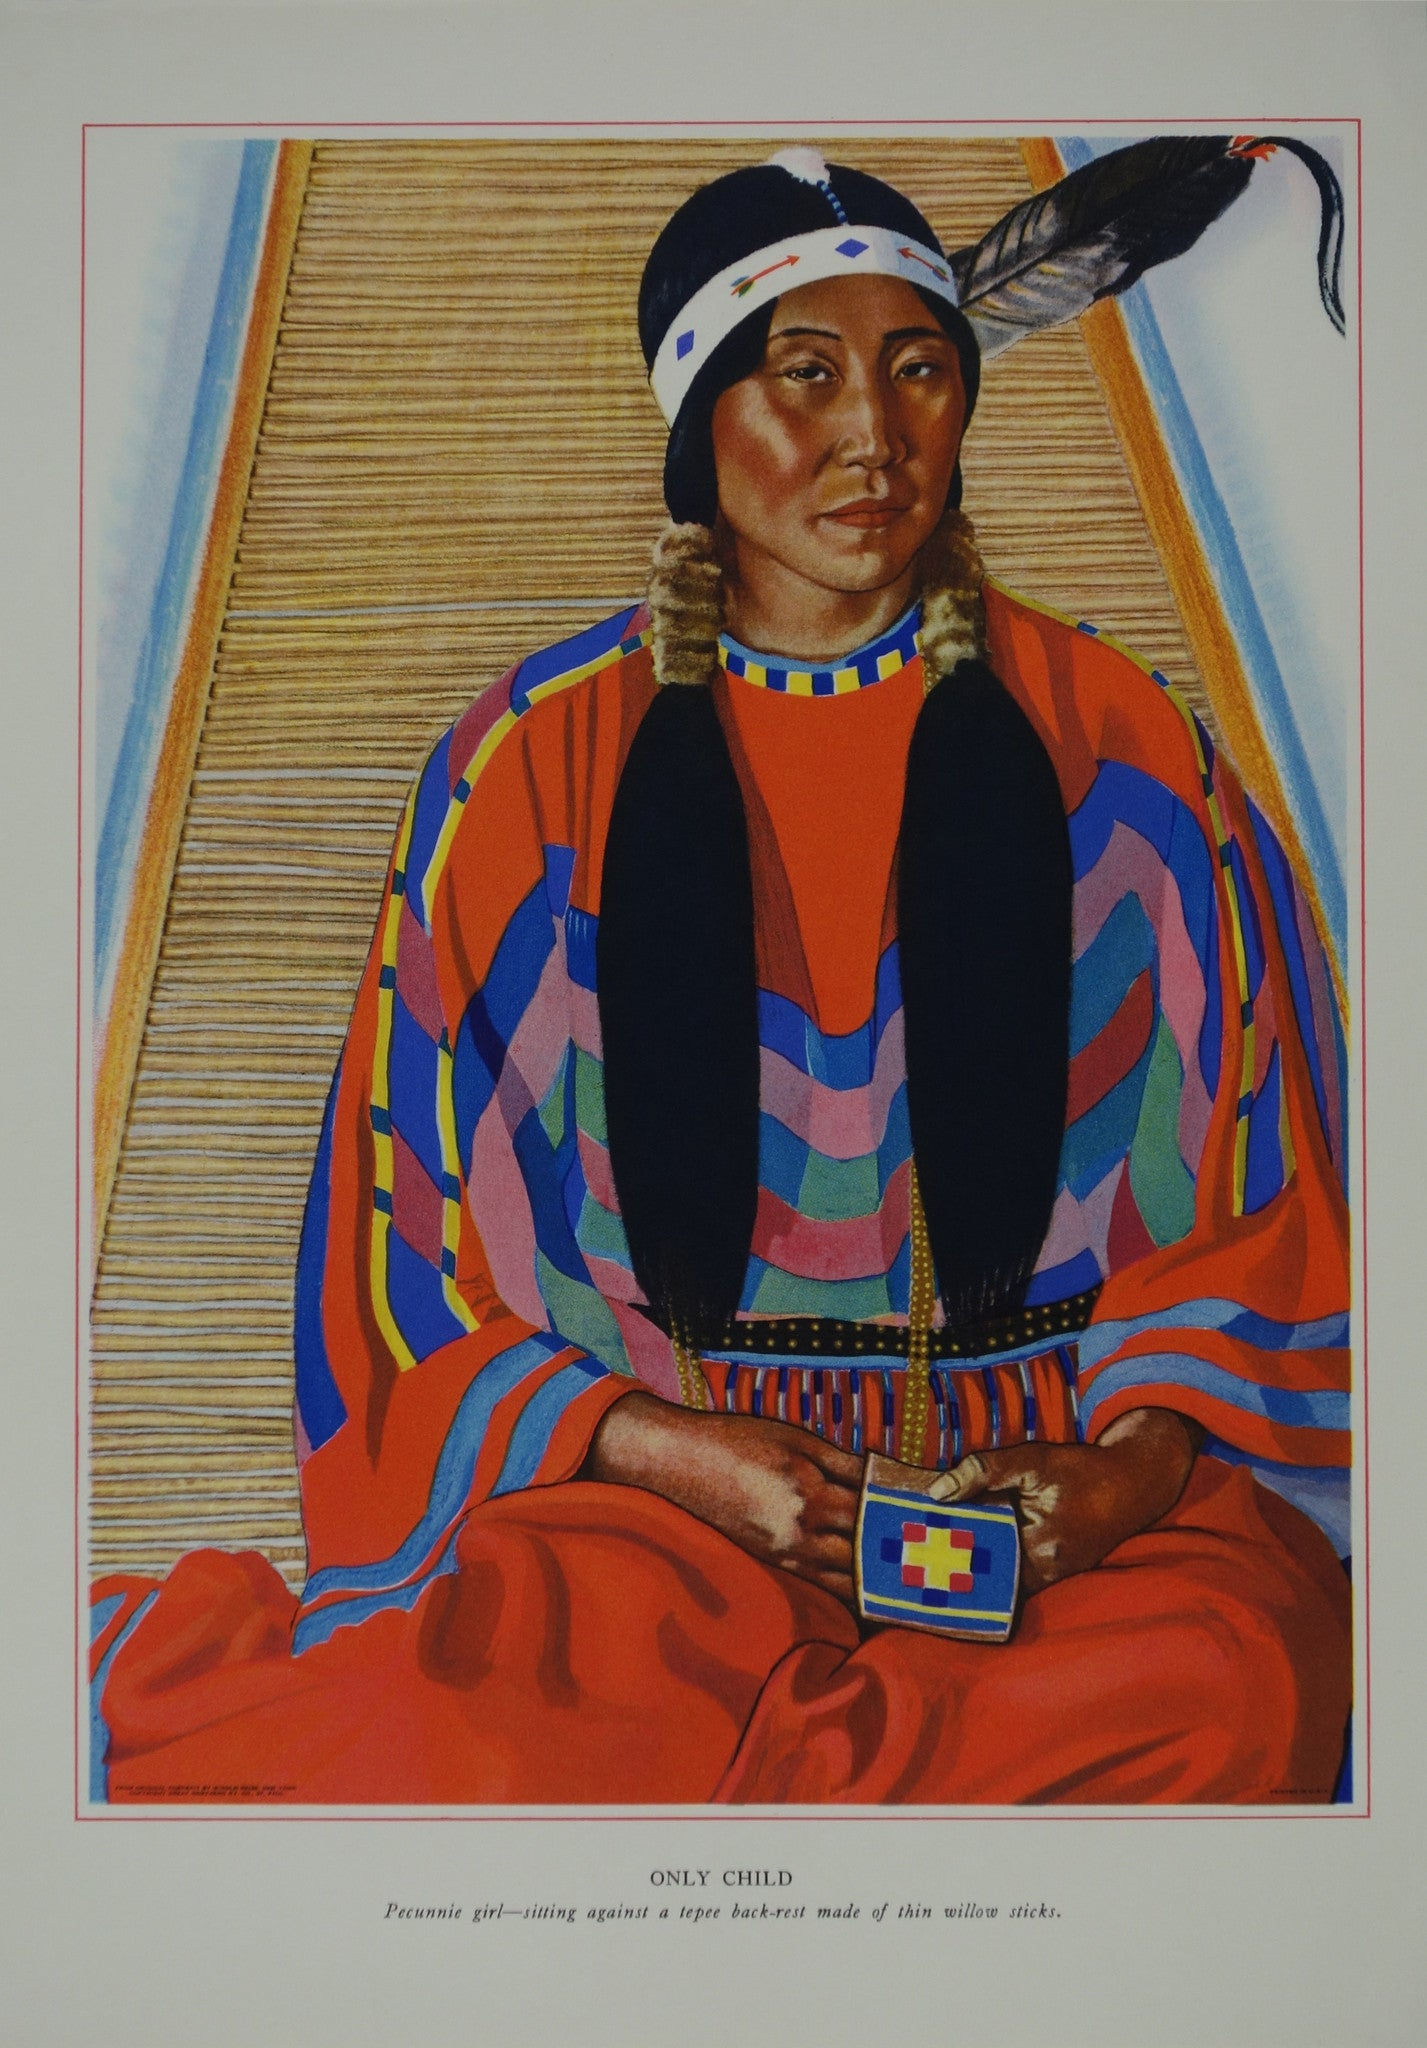 Portrait of Blackfeet Indian - Only Child